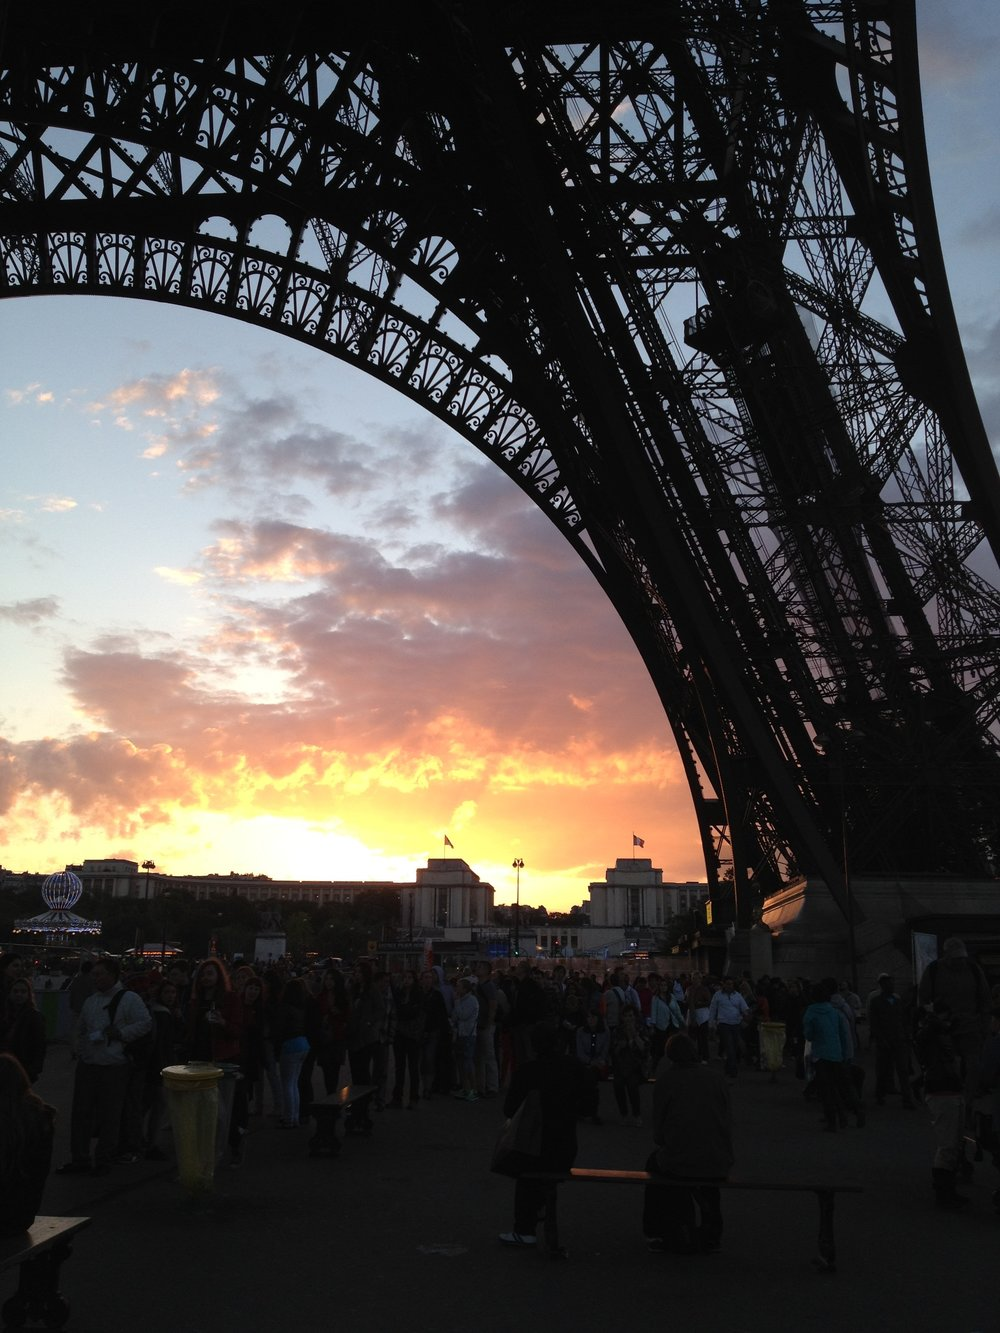 Eiffel Tower Sunset.jpeg